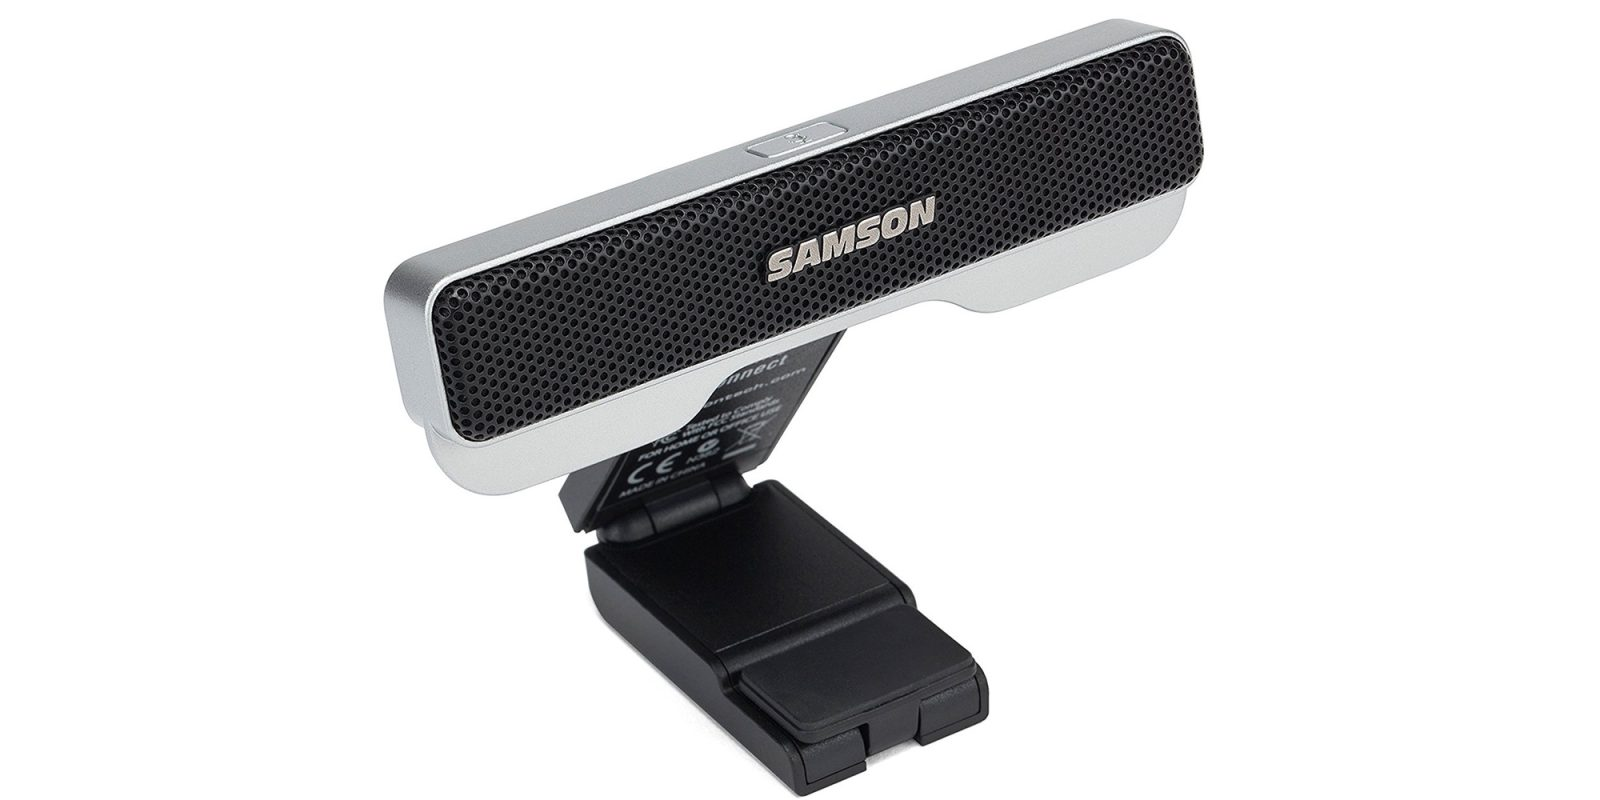 Daily Deals Samson Stereo Usb Microphone 30 Logitech K120 Keyboard 7 More